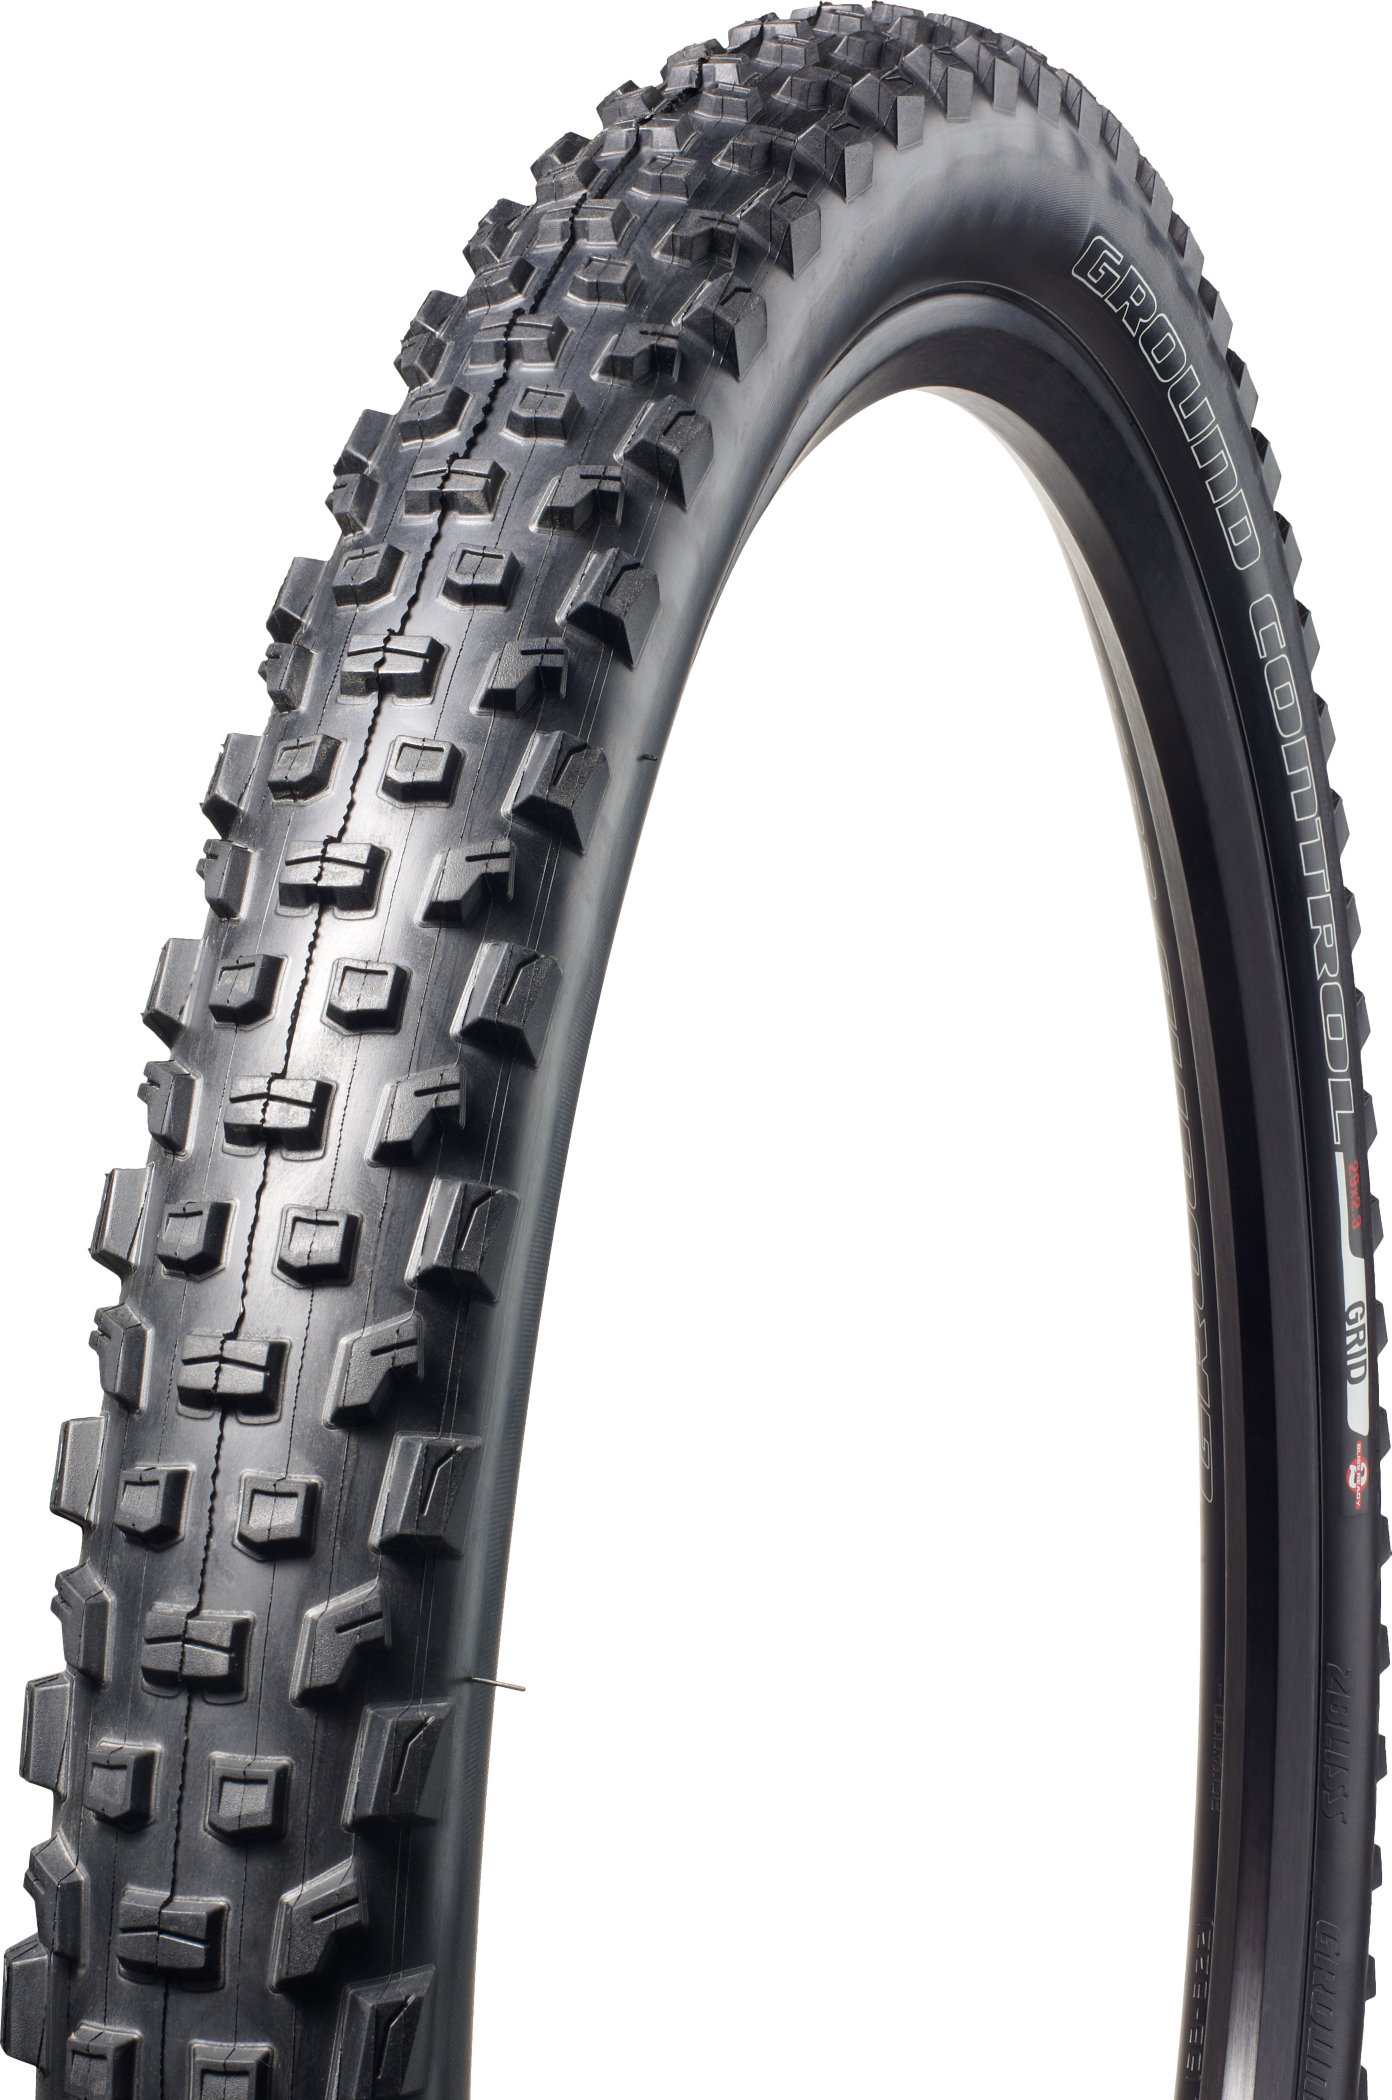 SPECIALIZED GROUND CONTROL SPORT TIRE 650BX2.1 - SPECIALIZED GROUND CONTROL SPORT TIRE 650BX2.1